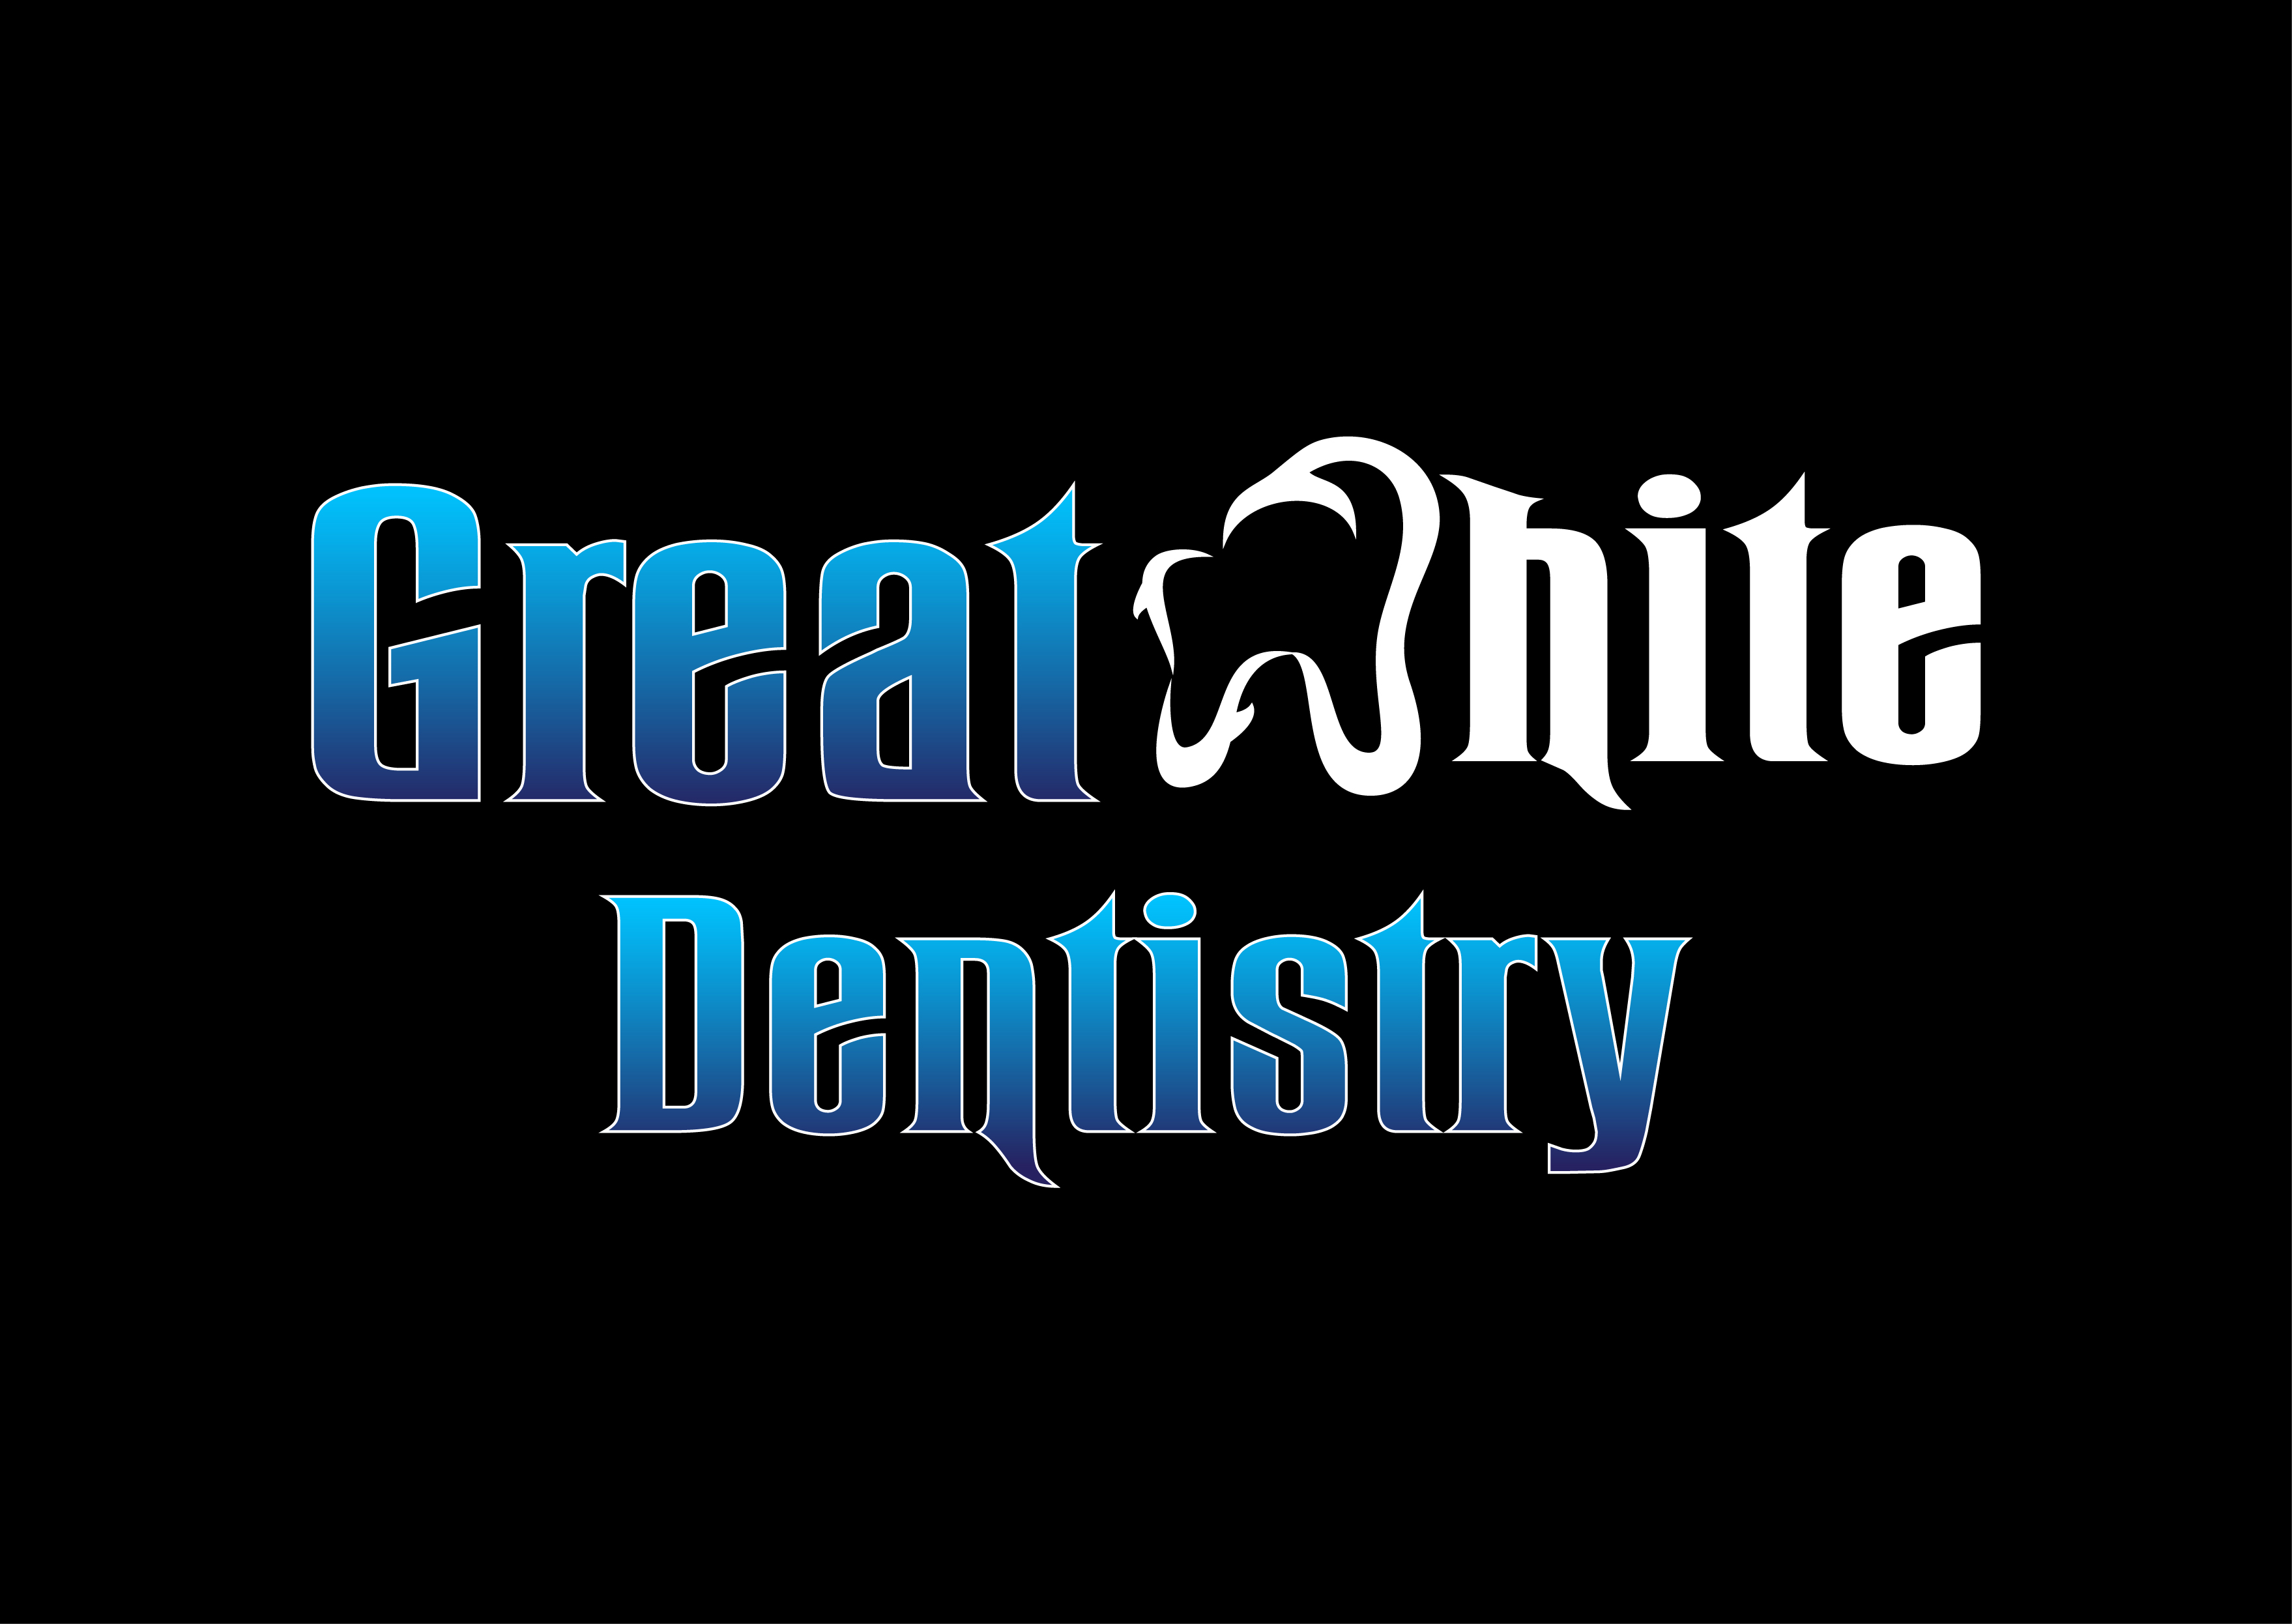 Logo Design by 3draw - Entry No. 136 in the Logo Design Contest Logo Design for Great White Dentistry.